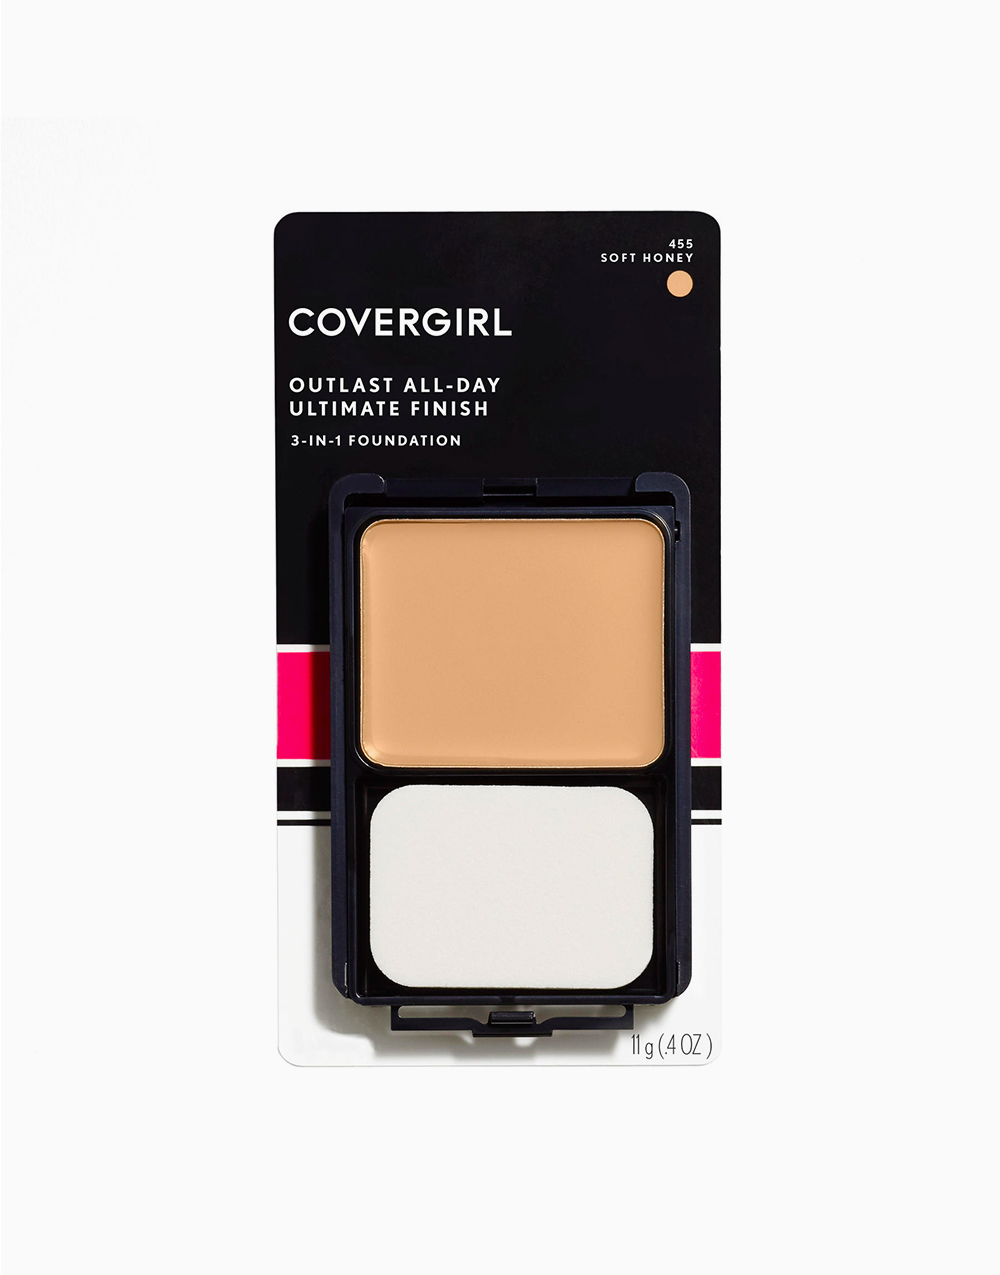 Outlast All-Day Ultimate Finish 3-in-1 Foundation Makeup by CoverGirl | Soft Honey